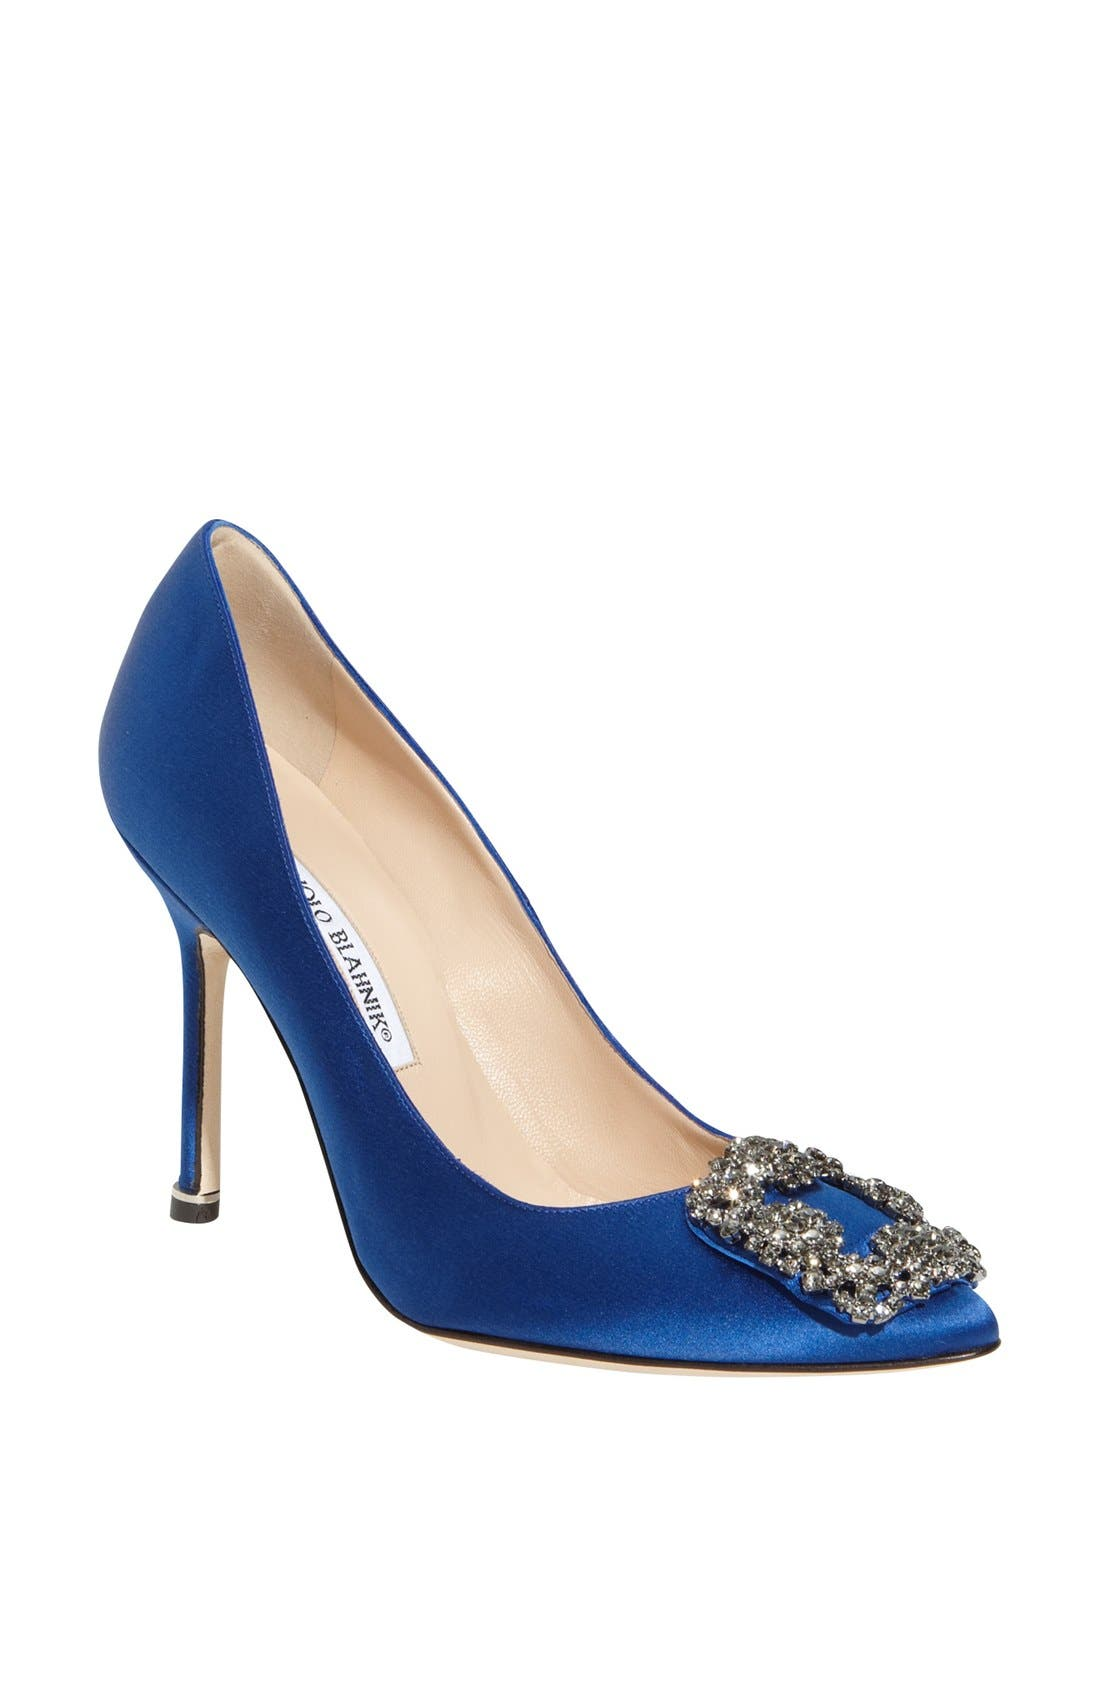 'Hangisi' Jewel Pump,                             Main thumbnail 1, color,                             Blue Satin